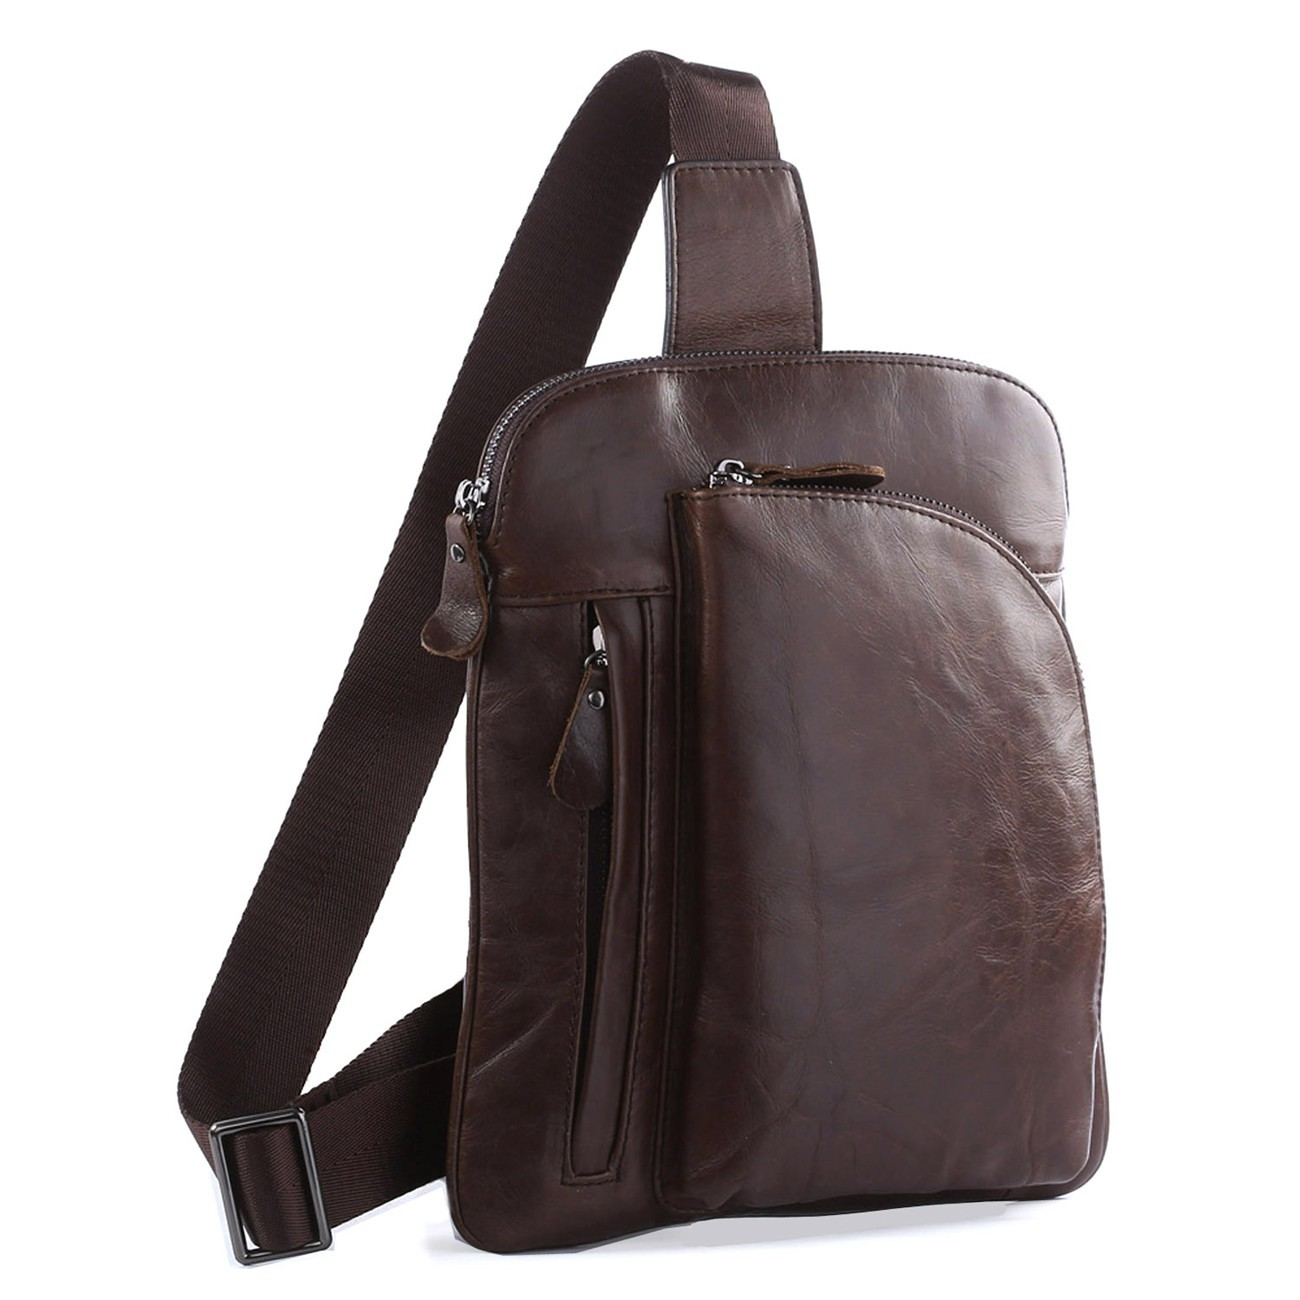 Korean Tide Retro Casual Leather Chest Pack Bag genuine first layer Leather messenger bags Fashion crossbody bag 7194c